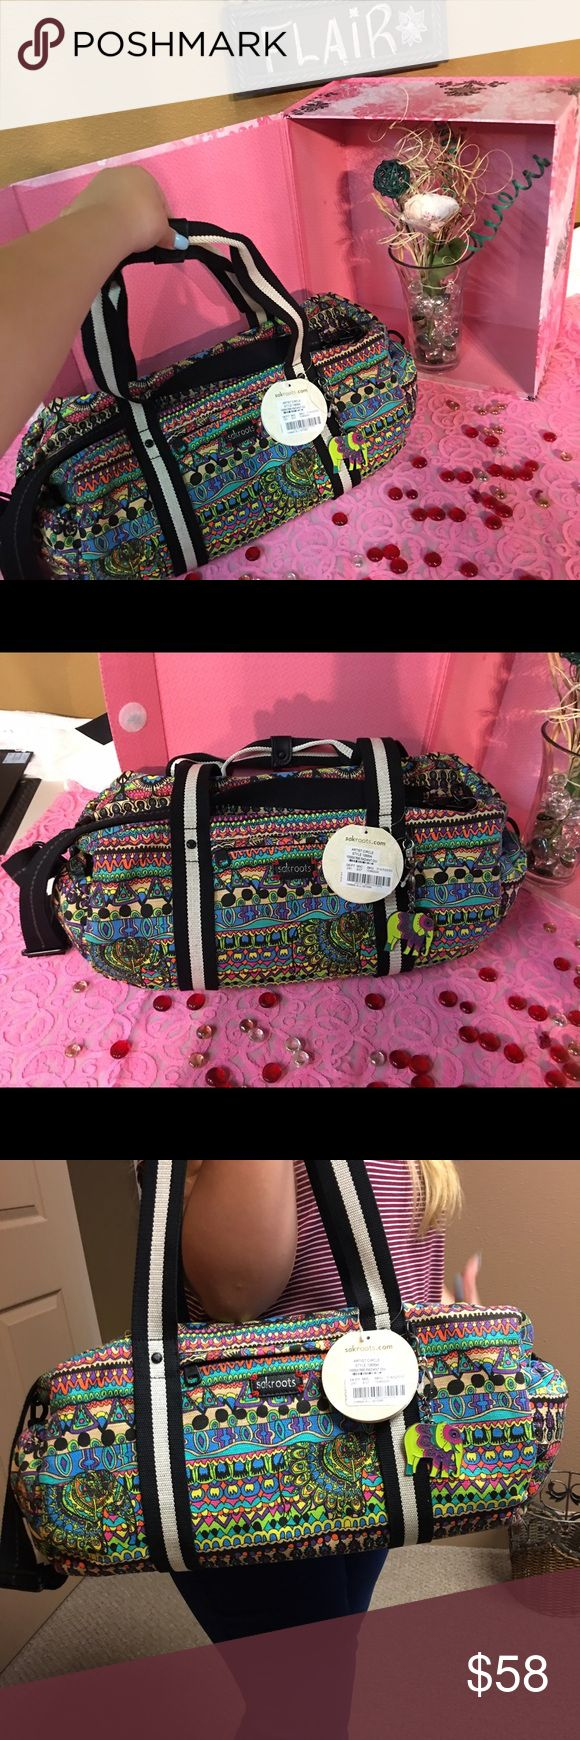 Skaroots duffle bag Sakroots large duffle bag multi bright neon colors with an elephant keychain NWT super adorable!! Sakroots Bags Travel Bags